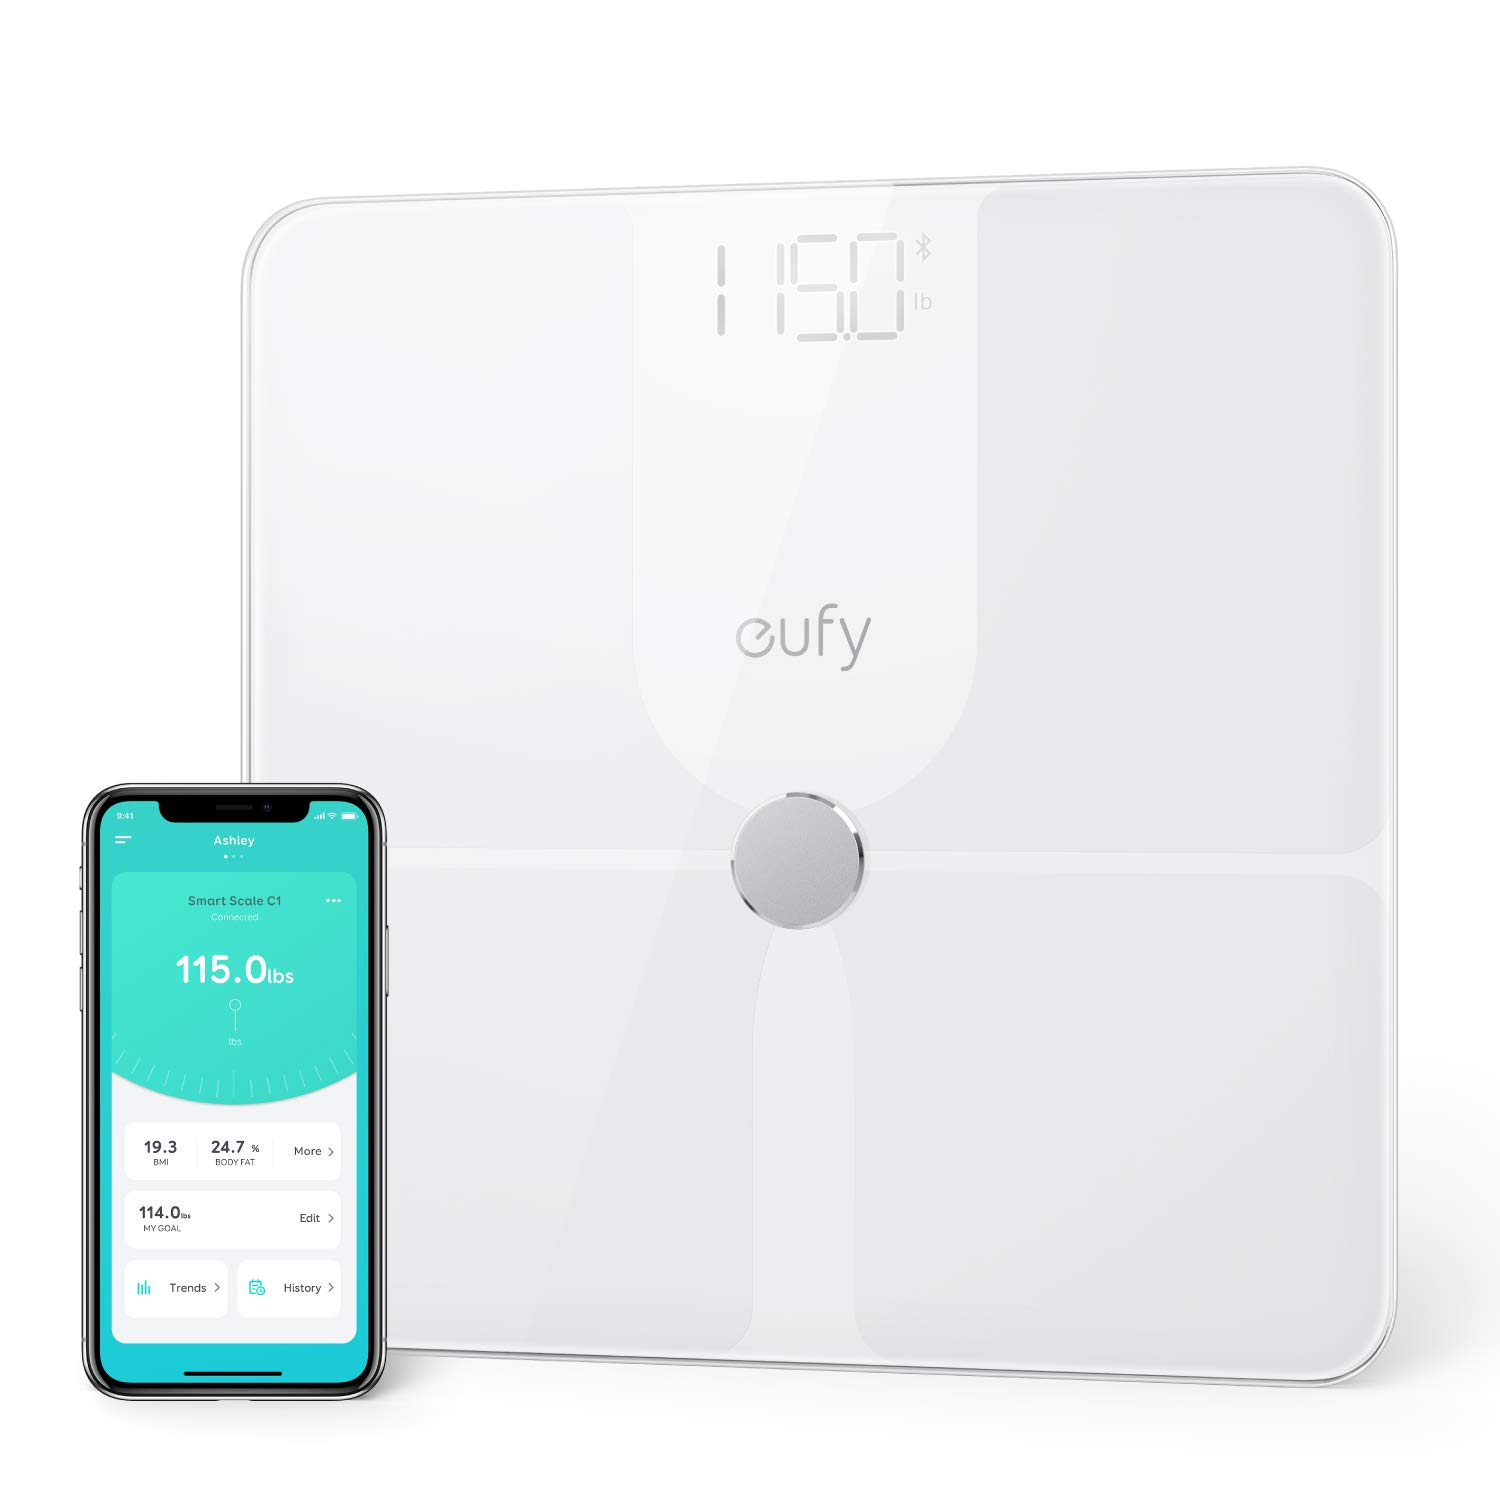 eufy Smart Scale P1 with Bluetooth, Body Fat Scale, Wireless Digital Bathroom Scale, 14 Measurements, Weight/Body Fat/BMI, Fitness Body Composition Analysis, Black/White, lbs/kg. by eufy